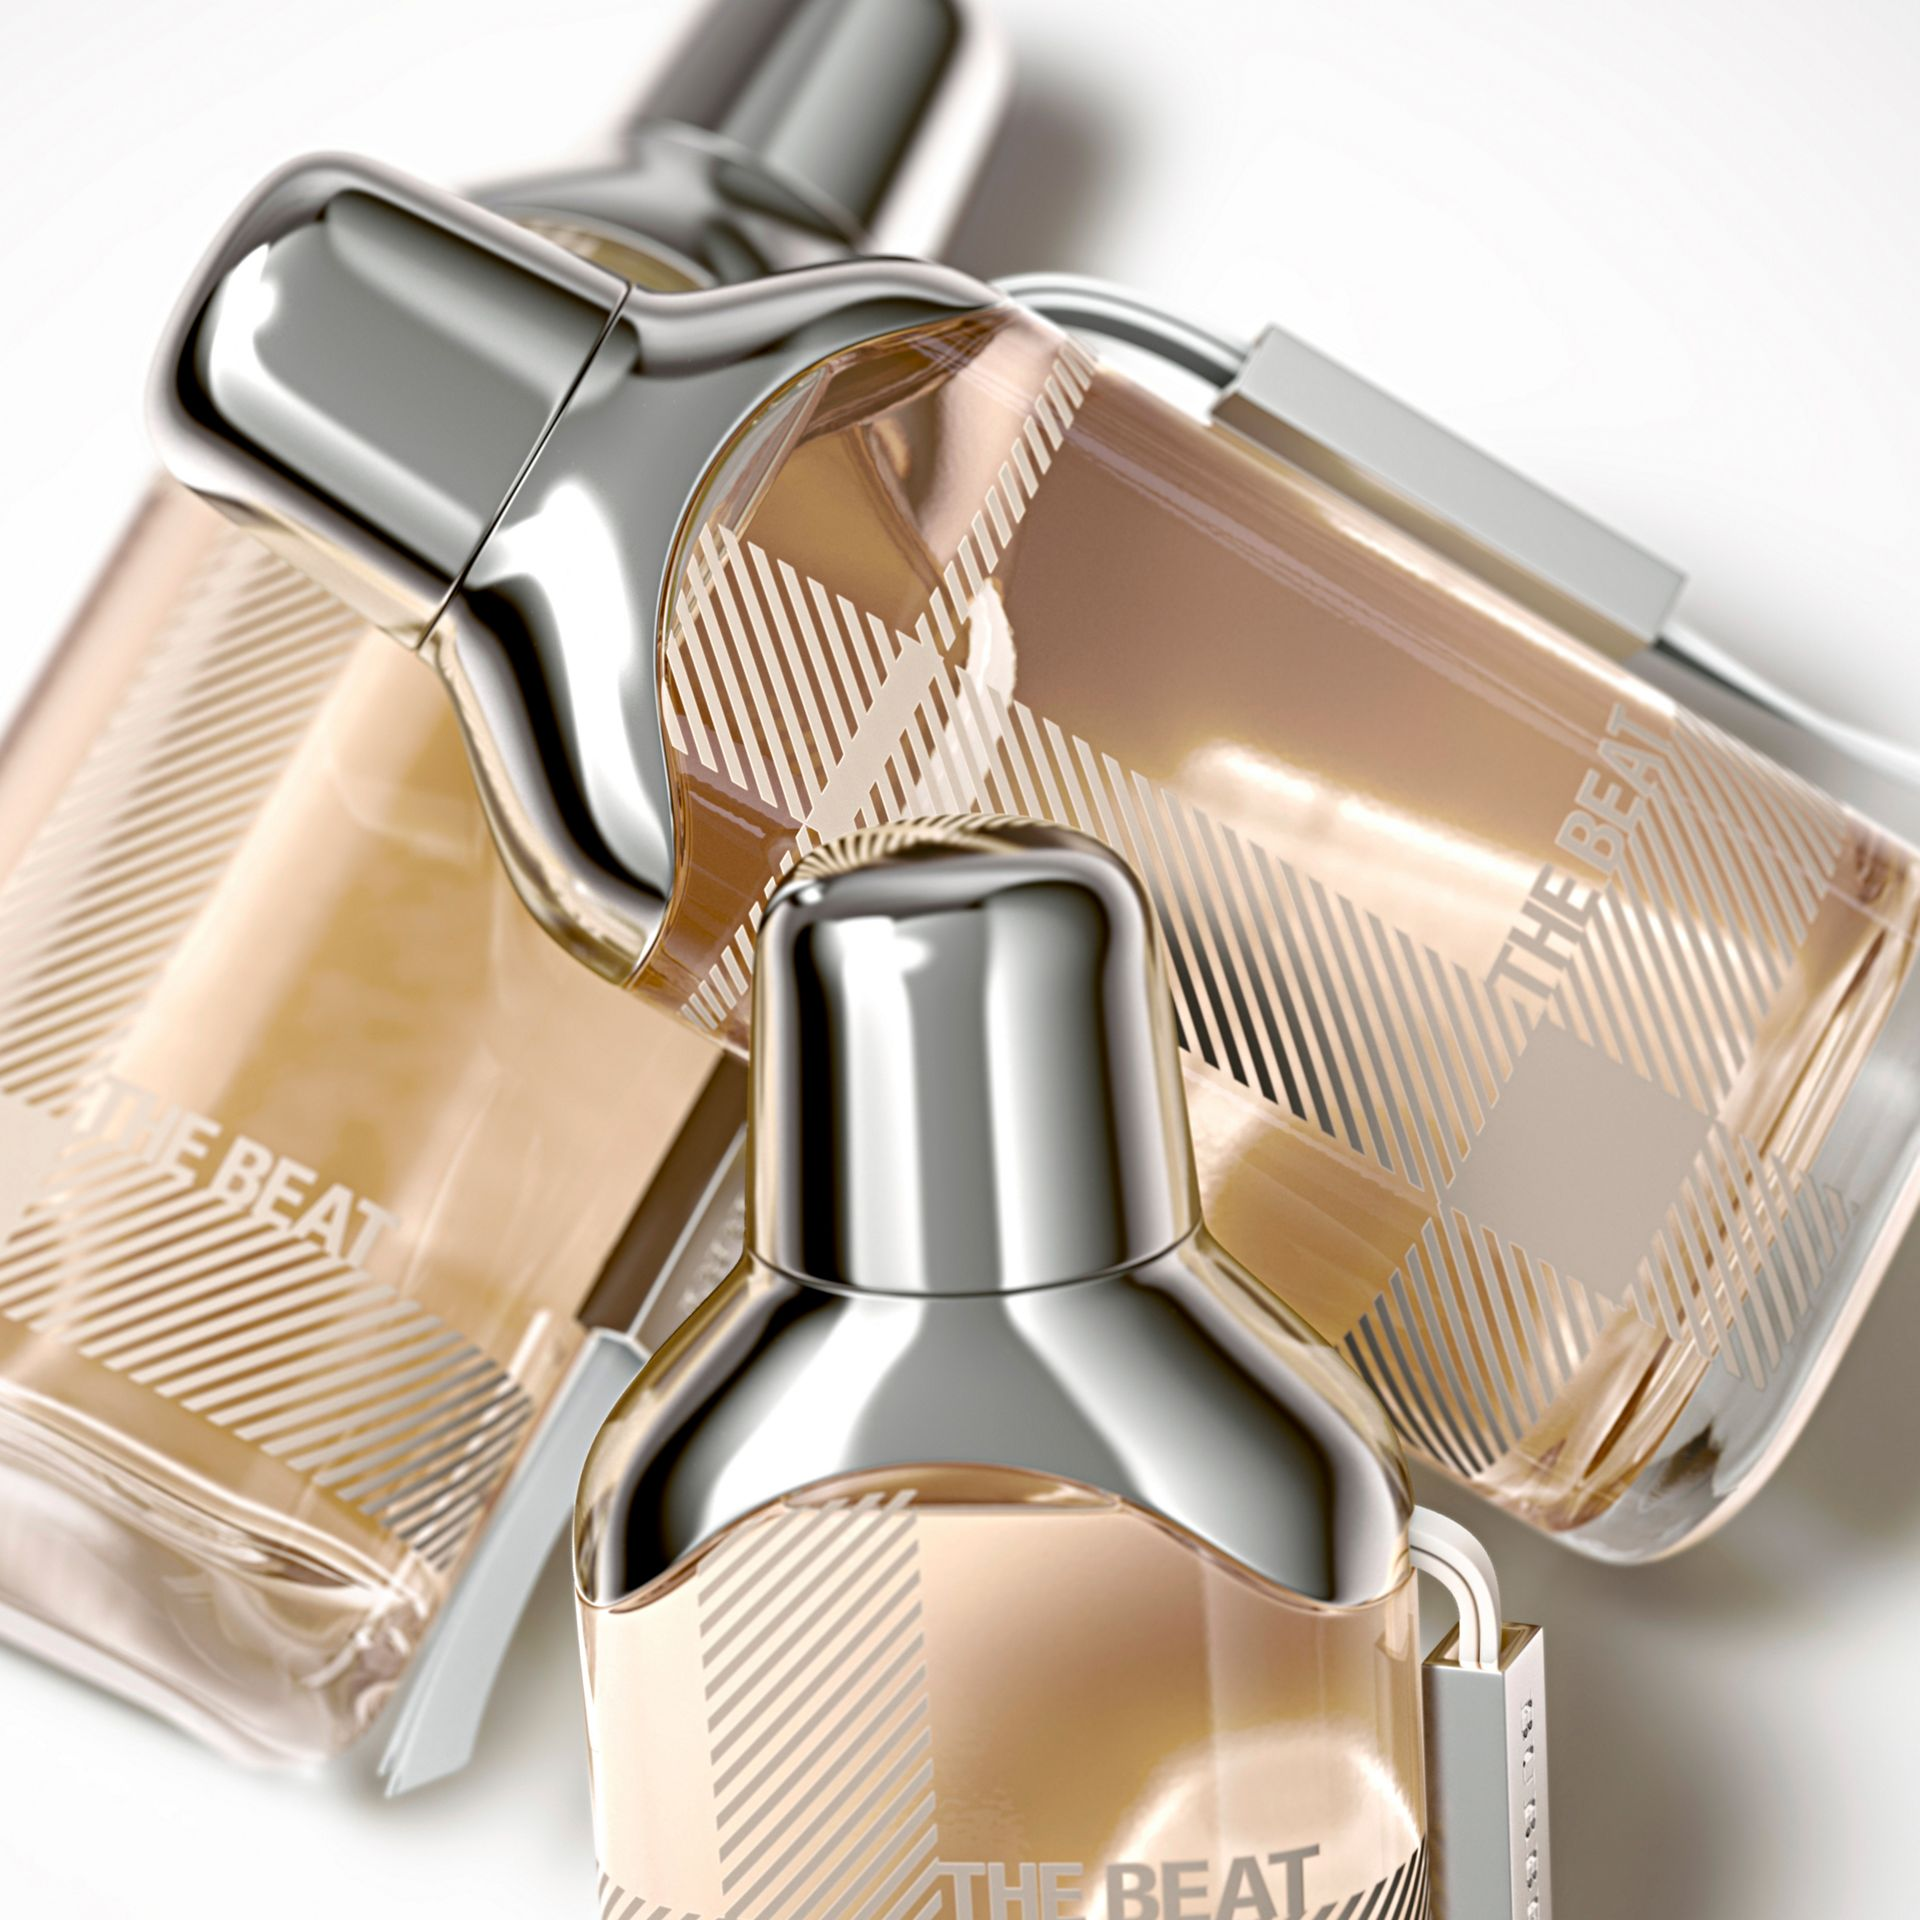 Burberry The Beat Eau de Parfum für Damen 30 ml - Galerie-Bild 2